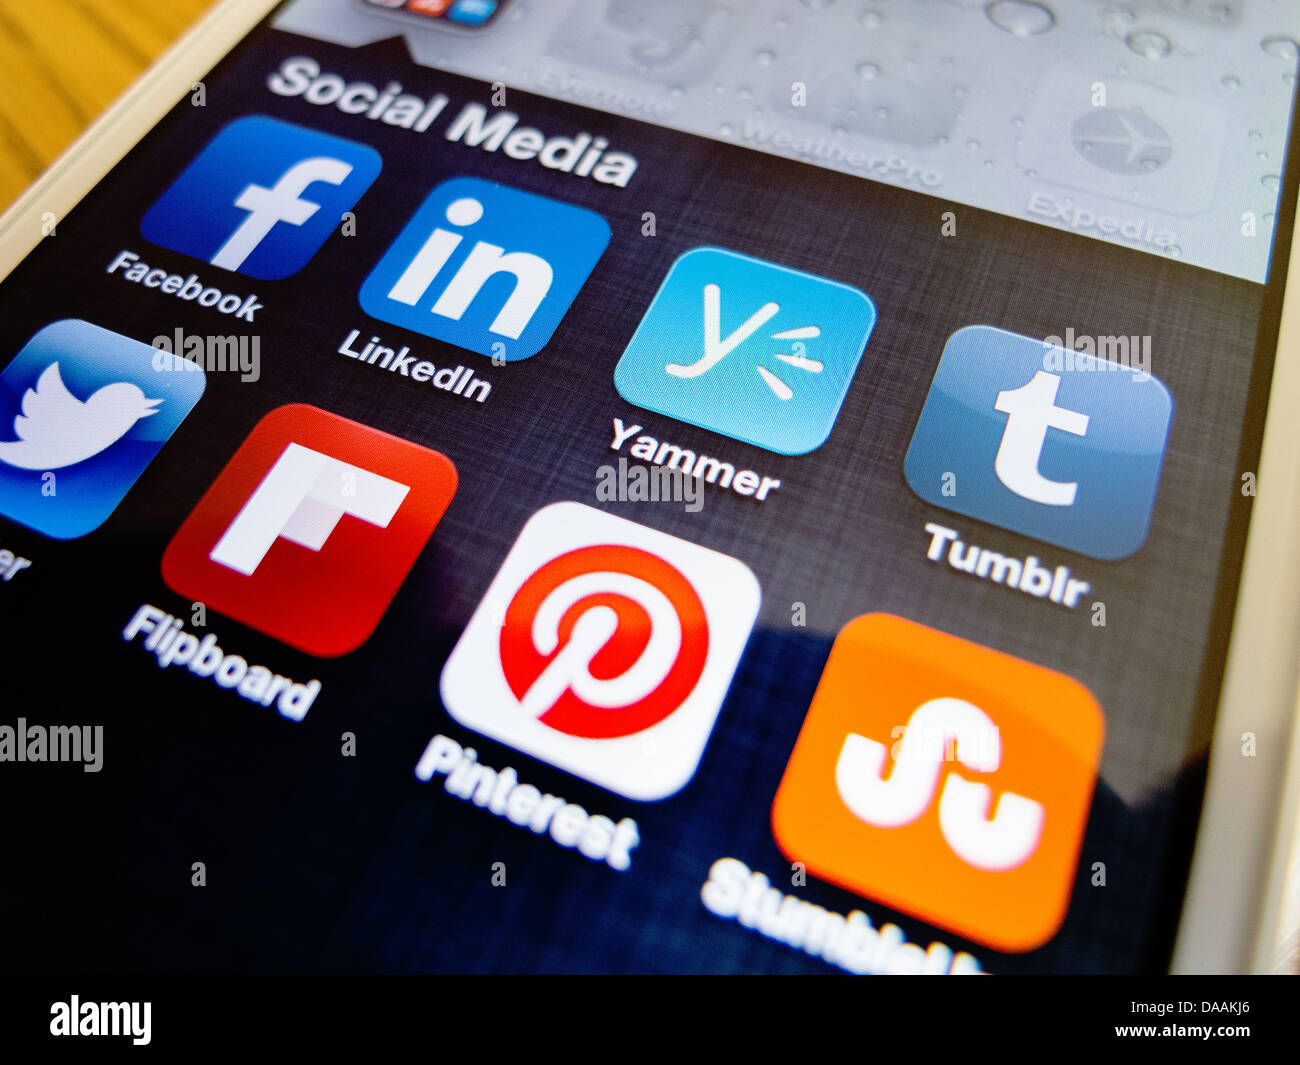 Detail of iPhone 5 smart phone screen showing social media apps icons - Stock Image